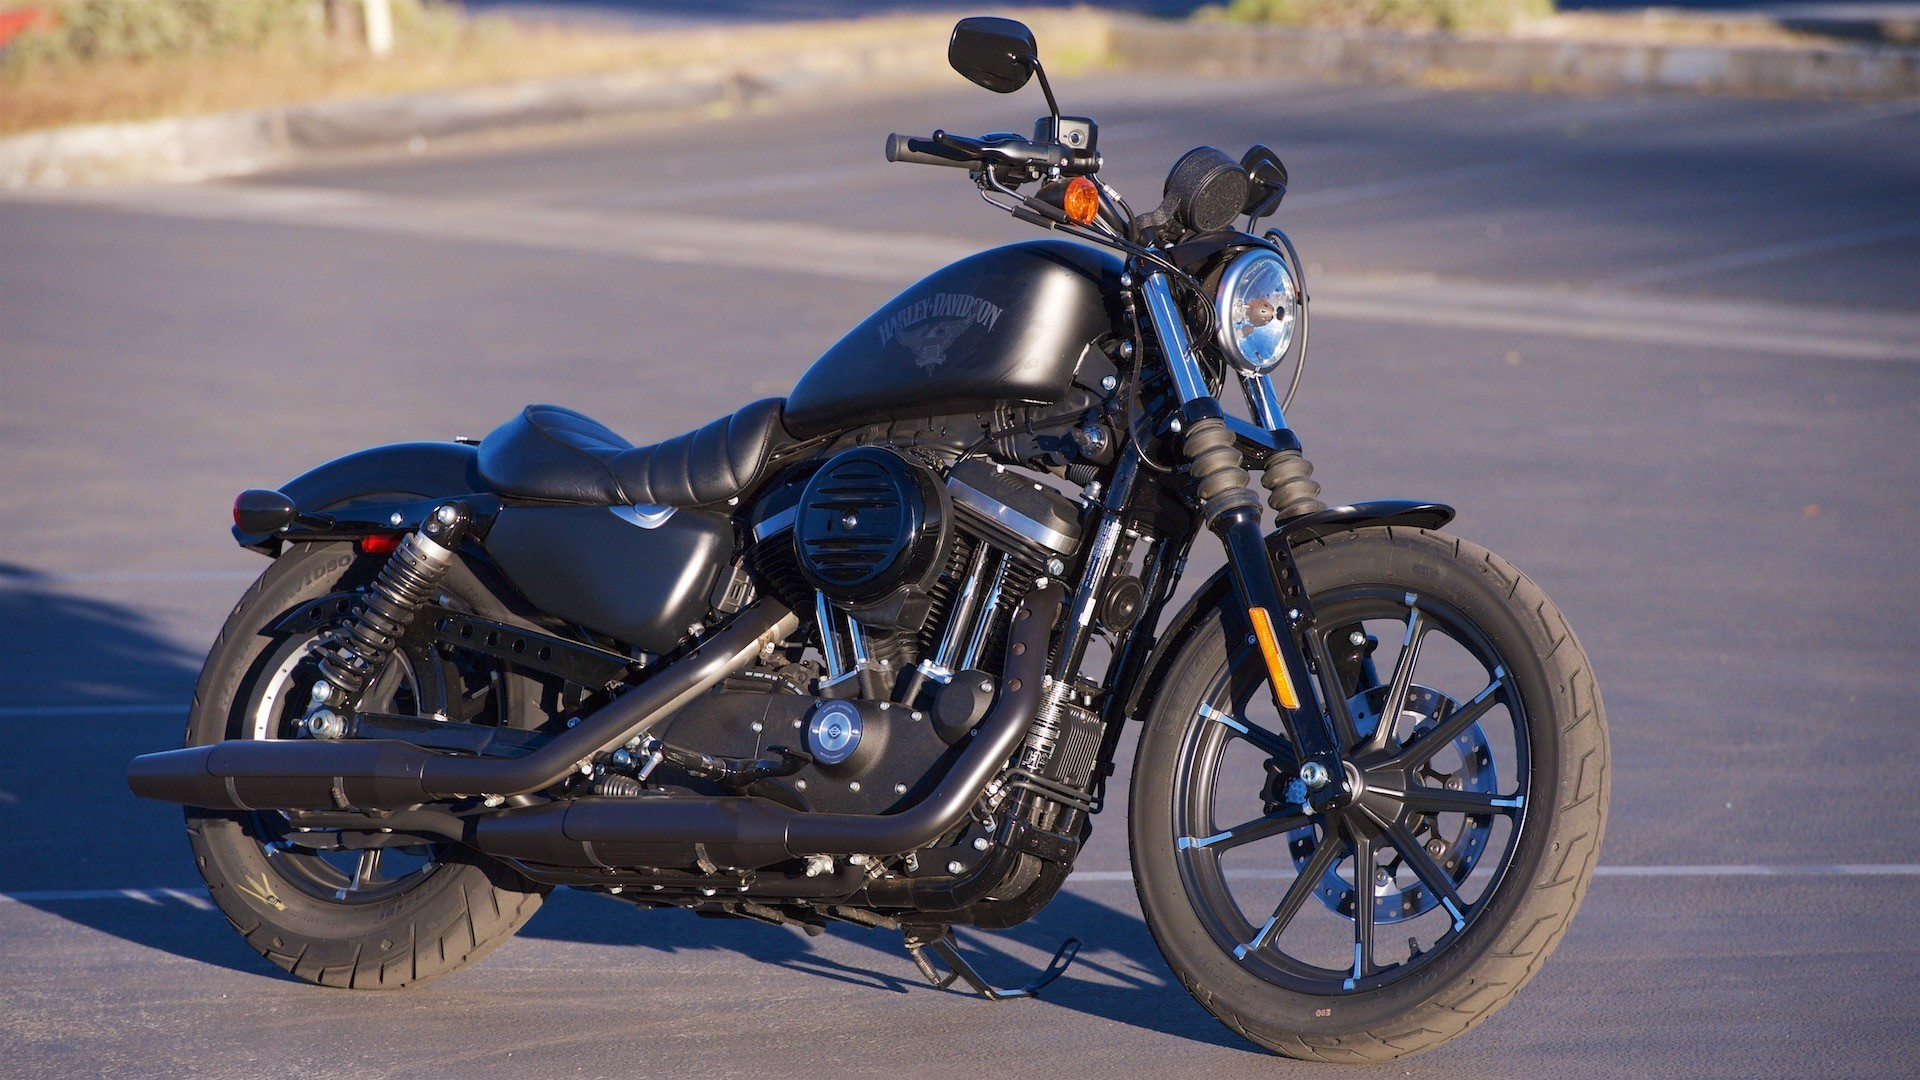 1920x1080  Harley Davidson Iron 883 for Sale Inspirational 2017 Harley  Davidson Sportster Iron 883 Review